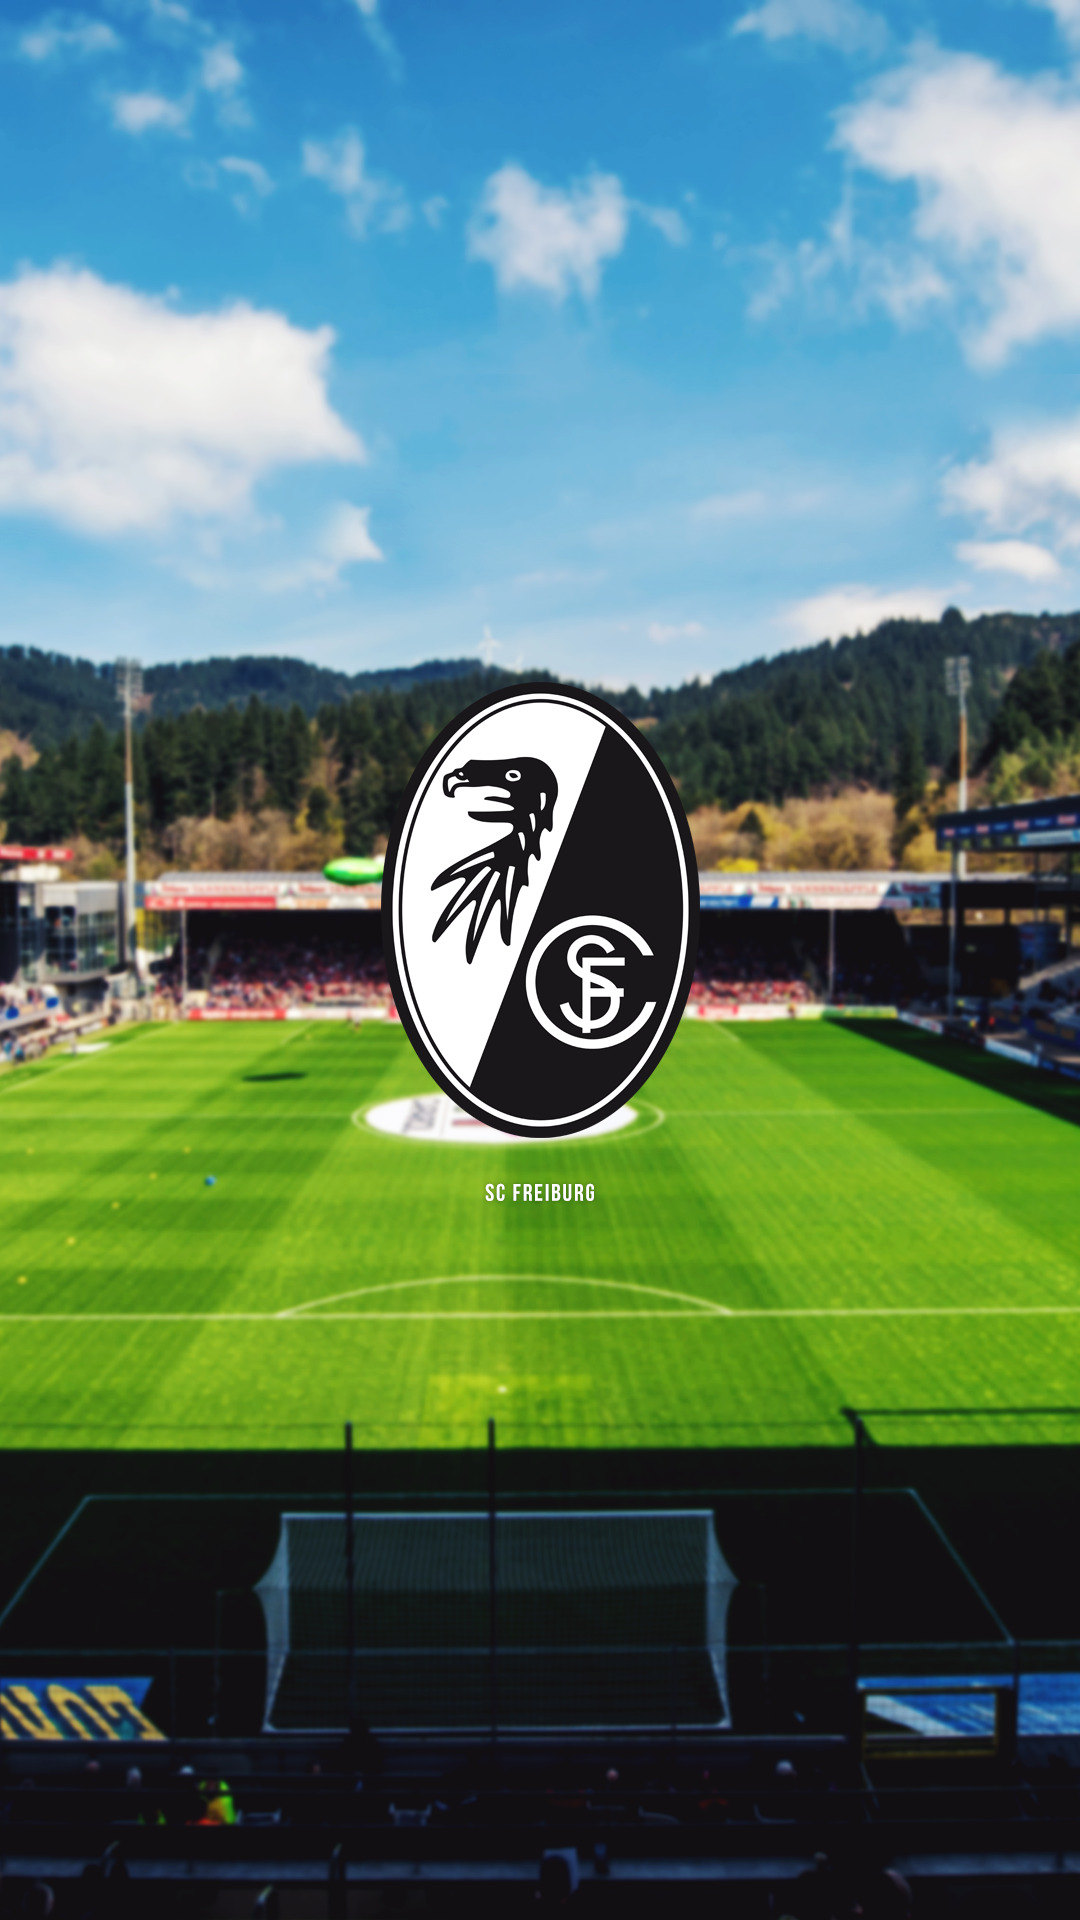 SC Freiburg of Germany wallpaper. Sc freiburg, Freiburg